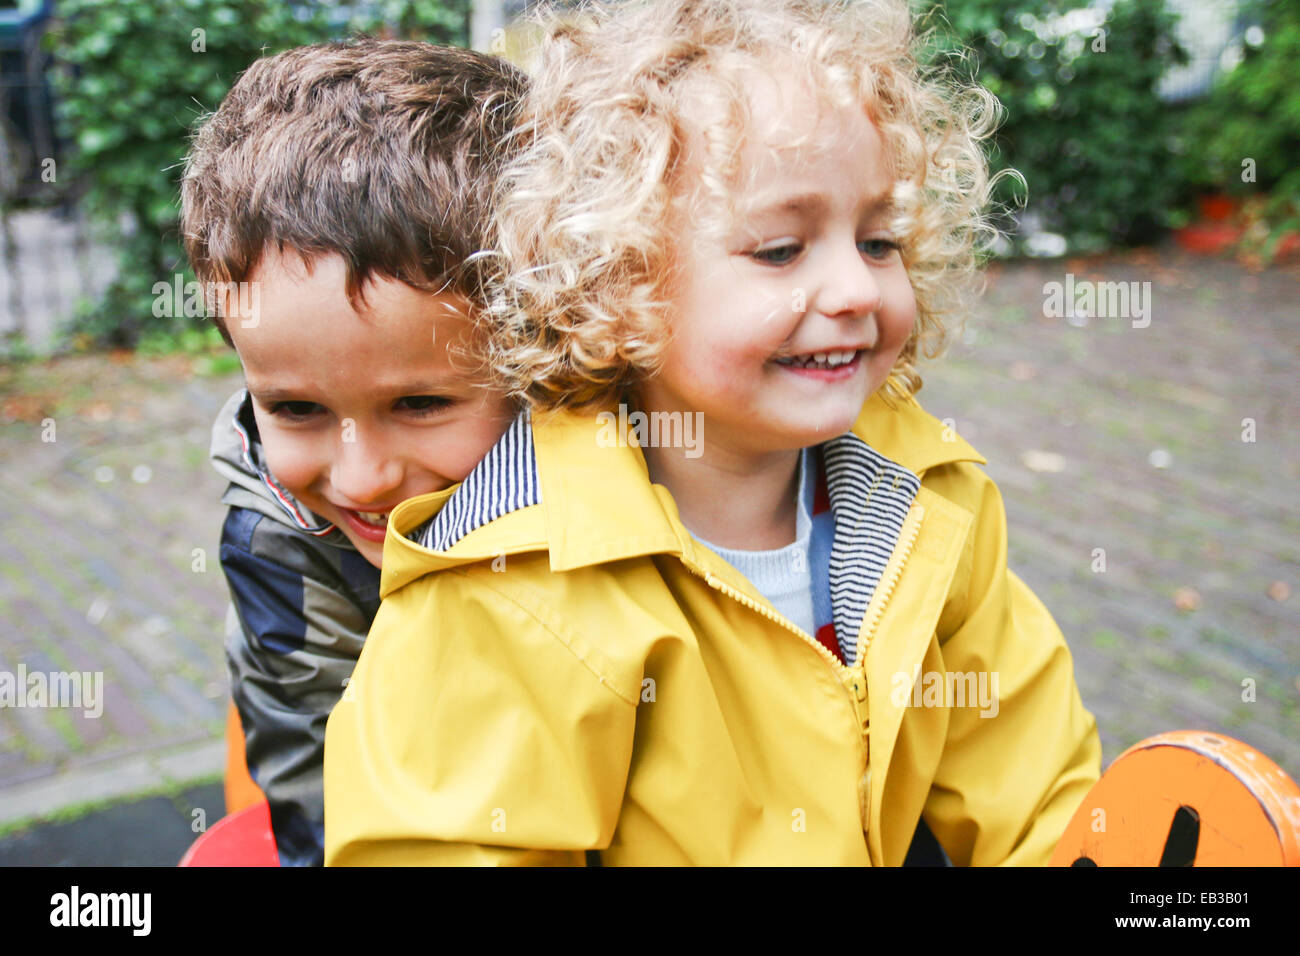 Smiling Boy and girl sitting on spring ride in playground - Stock Image